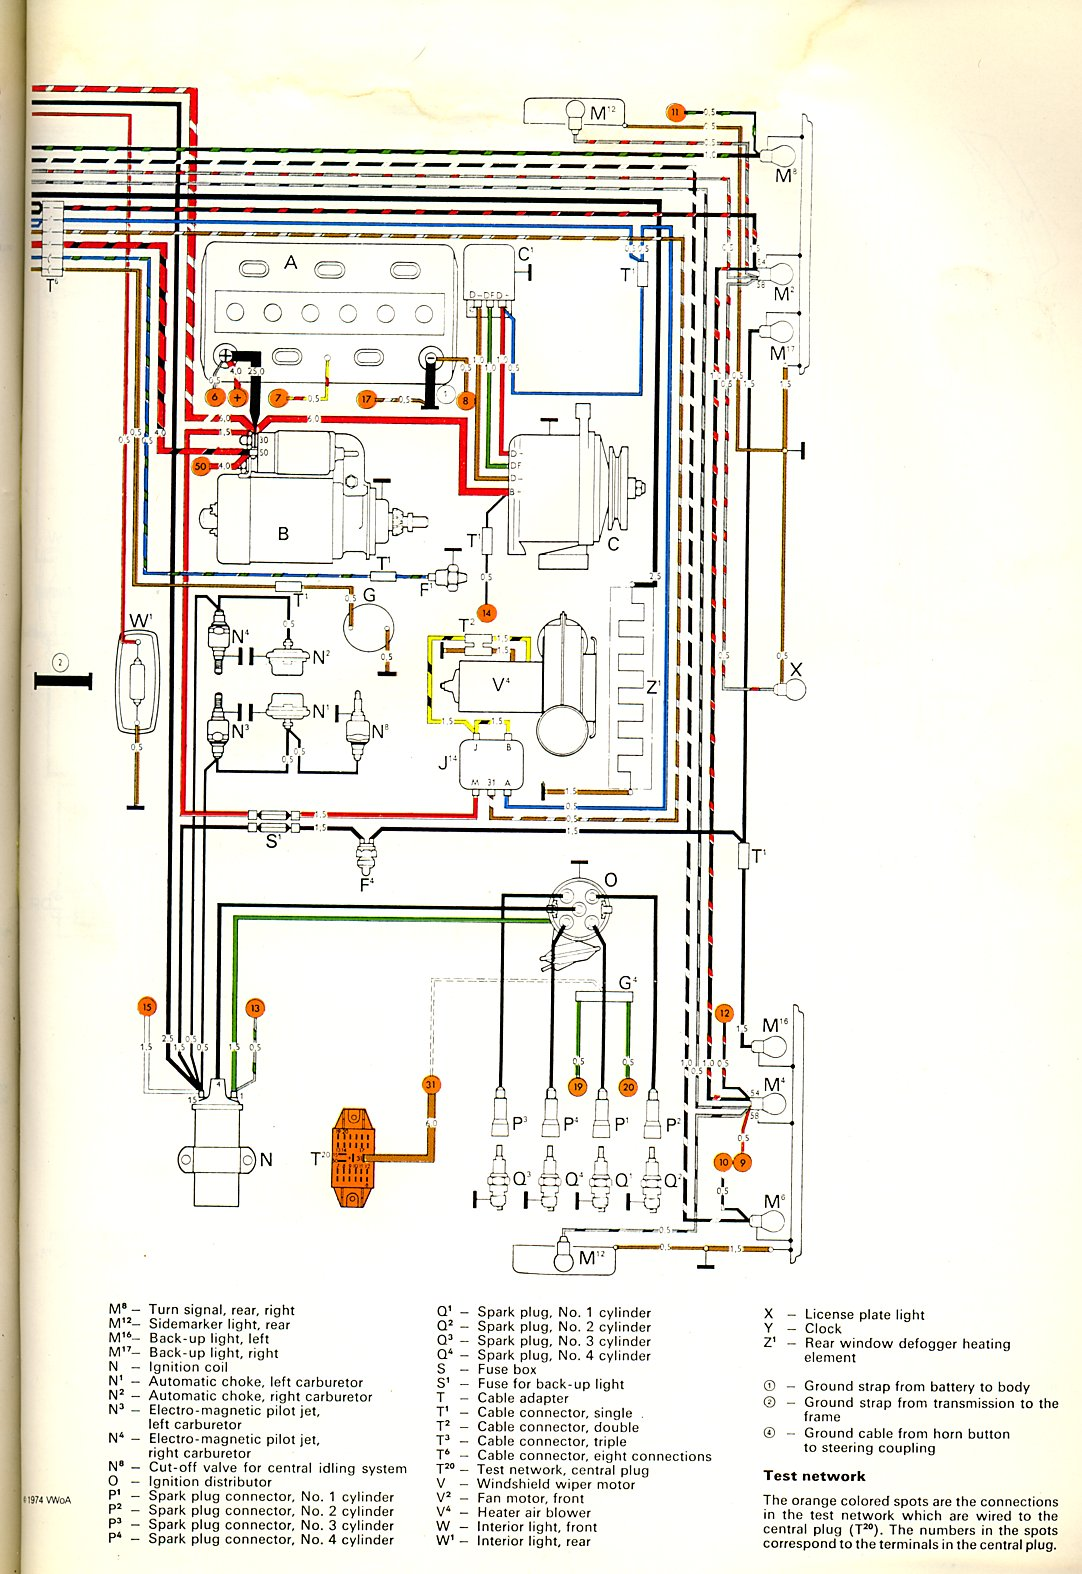 Spark Plug Wiring Diagram Vw Bus Car Diagrams Explained 72 Volkswagen Harness 1972 Thegoldenbug Com Rh 1973 Engine